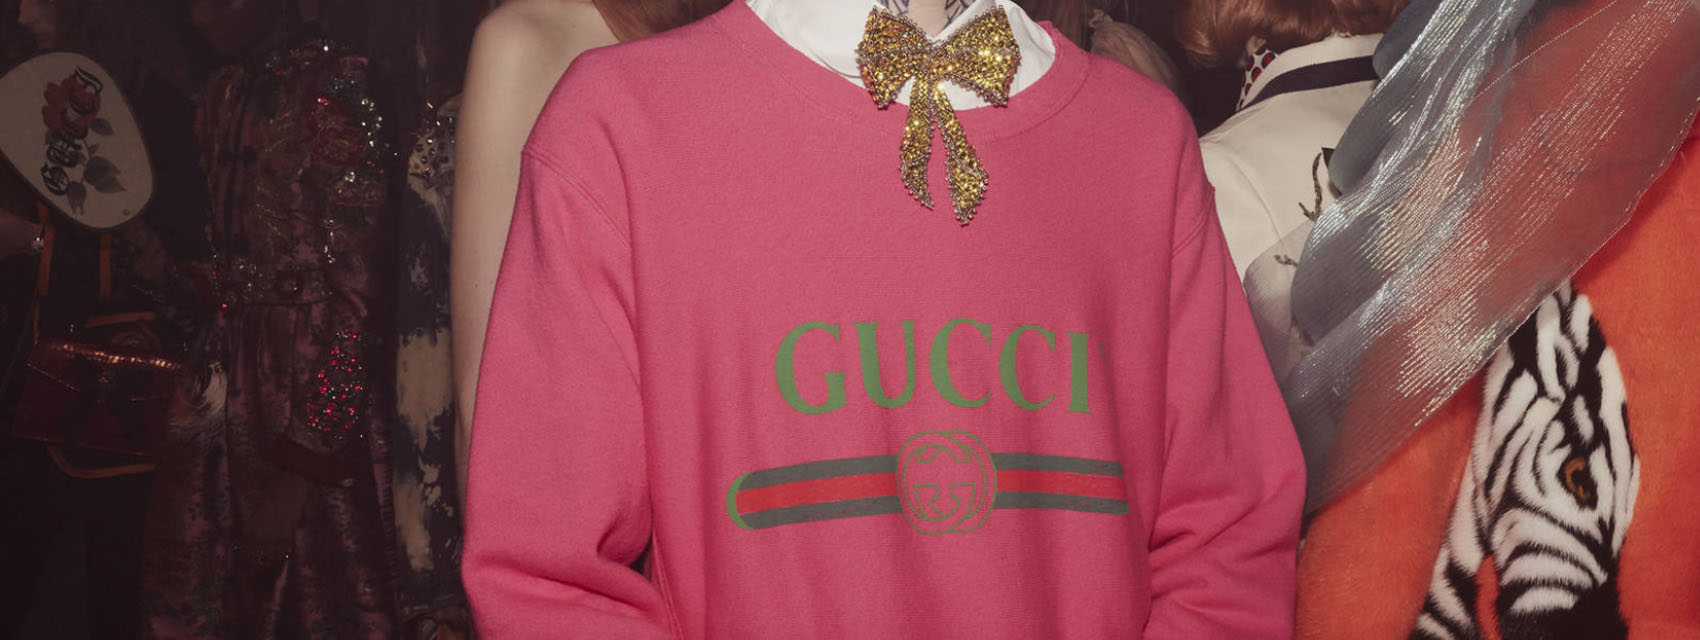 Gucci summer collection 2017